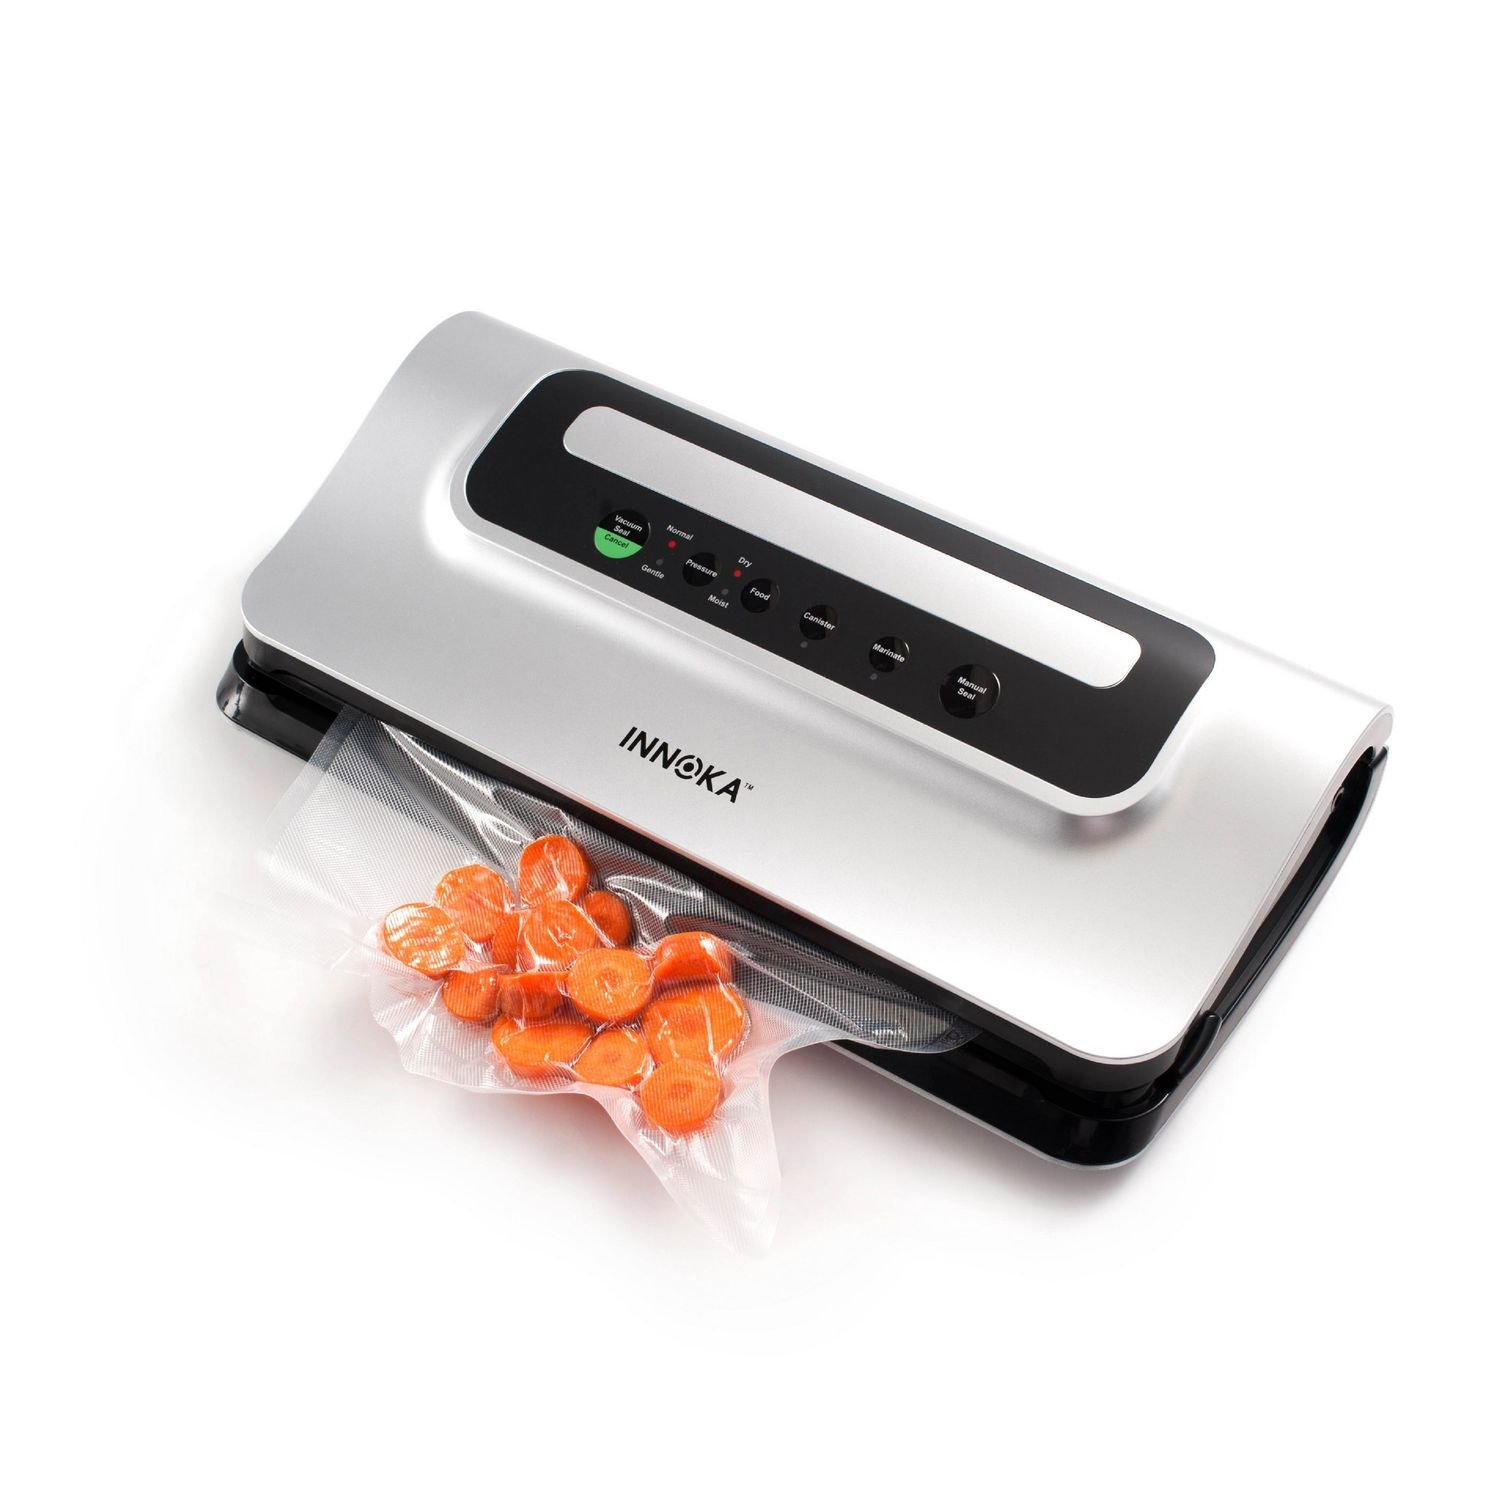 INNOKA Vacuum Sealer 2 IN 1, Sealing System with Cutter, Automatic Food Saver Machine for Preservation, Sous Vide & Canisters [ Dry, Moist, Delicate Food Modes ] Easy to Clean, LED Indicator